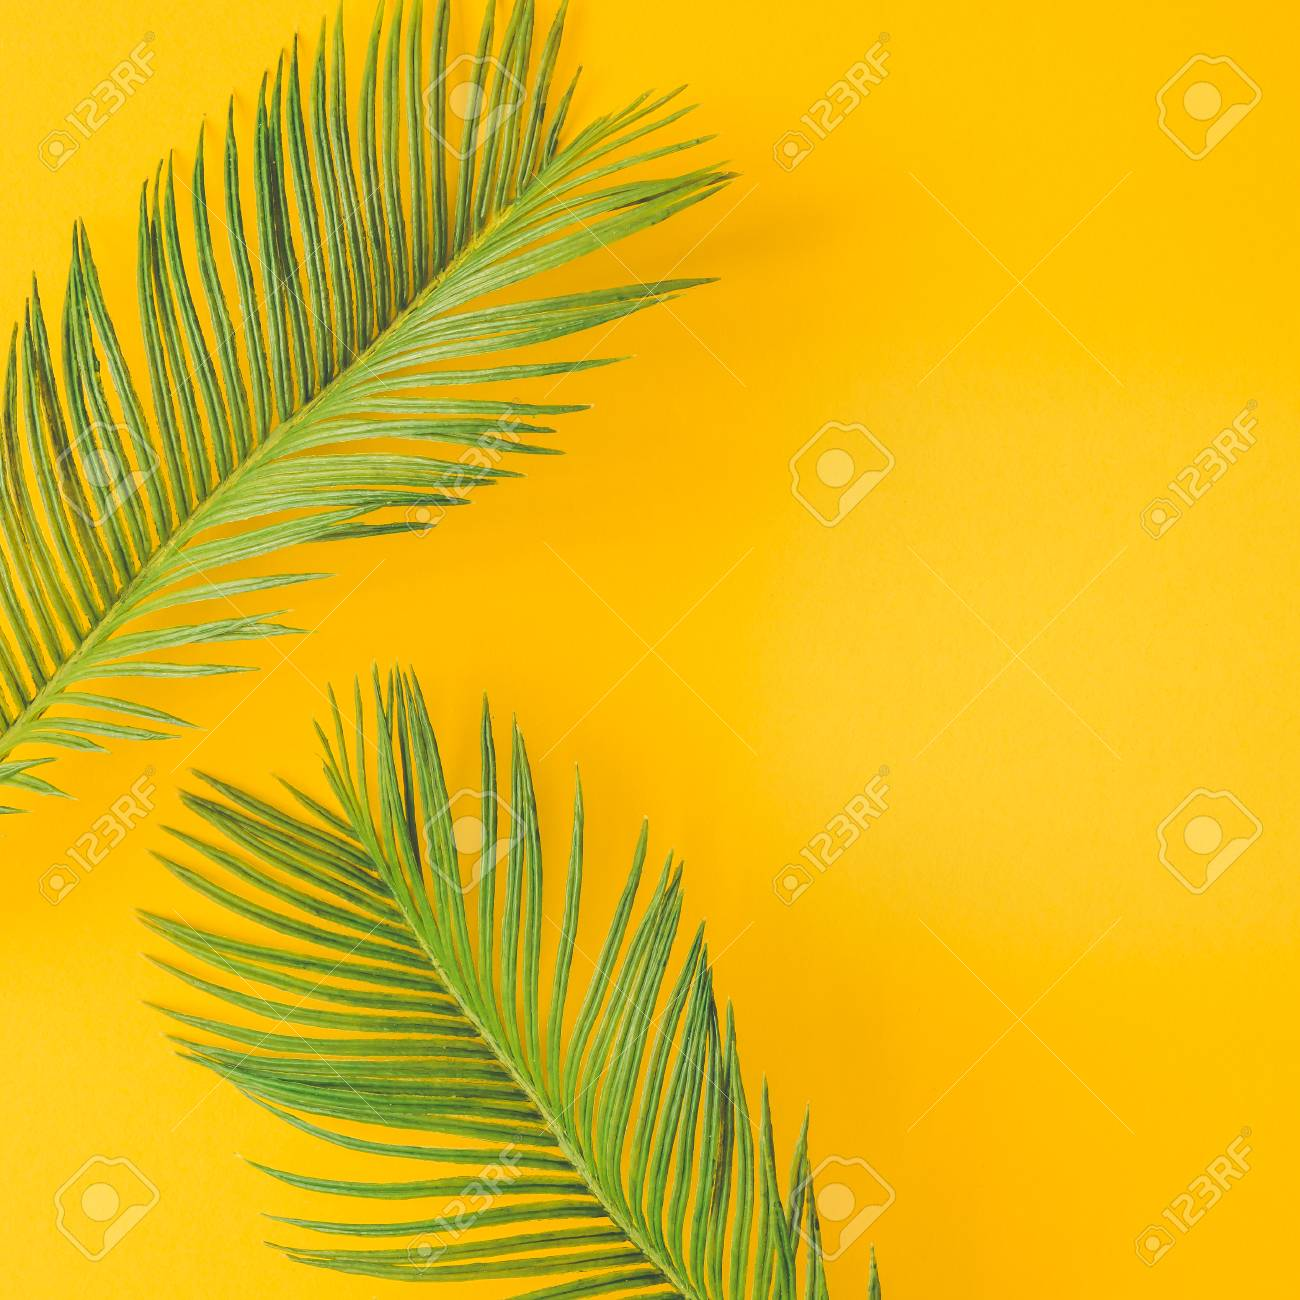 Green Tropical Palm Leaves On Bright Yellow Background Minimal Stock Photo Picture And Royalty Free Image Image 96874755 Find the best free stock images about yellow background. green tropical palm leaves on bright yellow background minimal